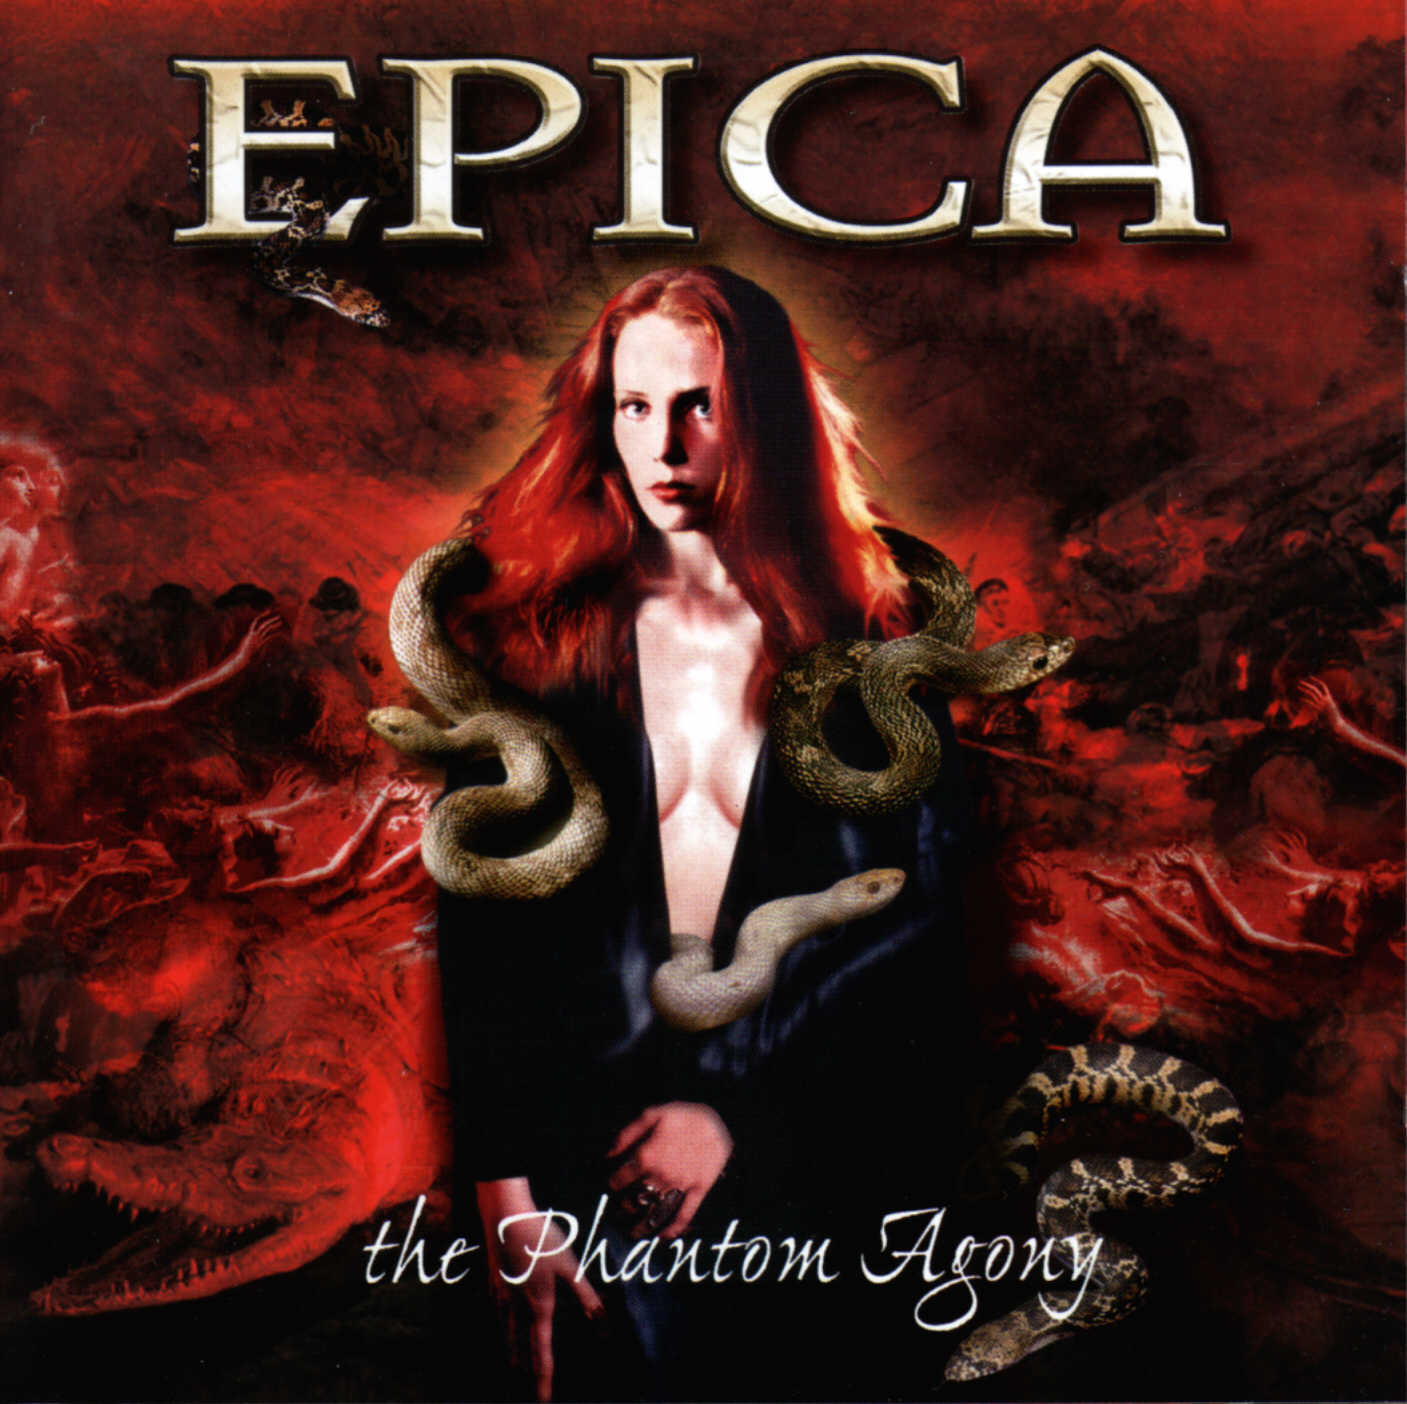 epica_the_phantom_agony.jpg